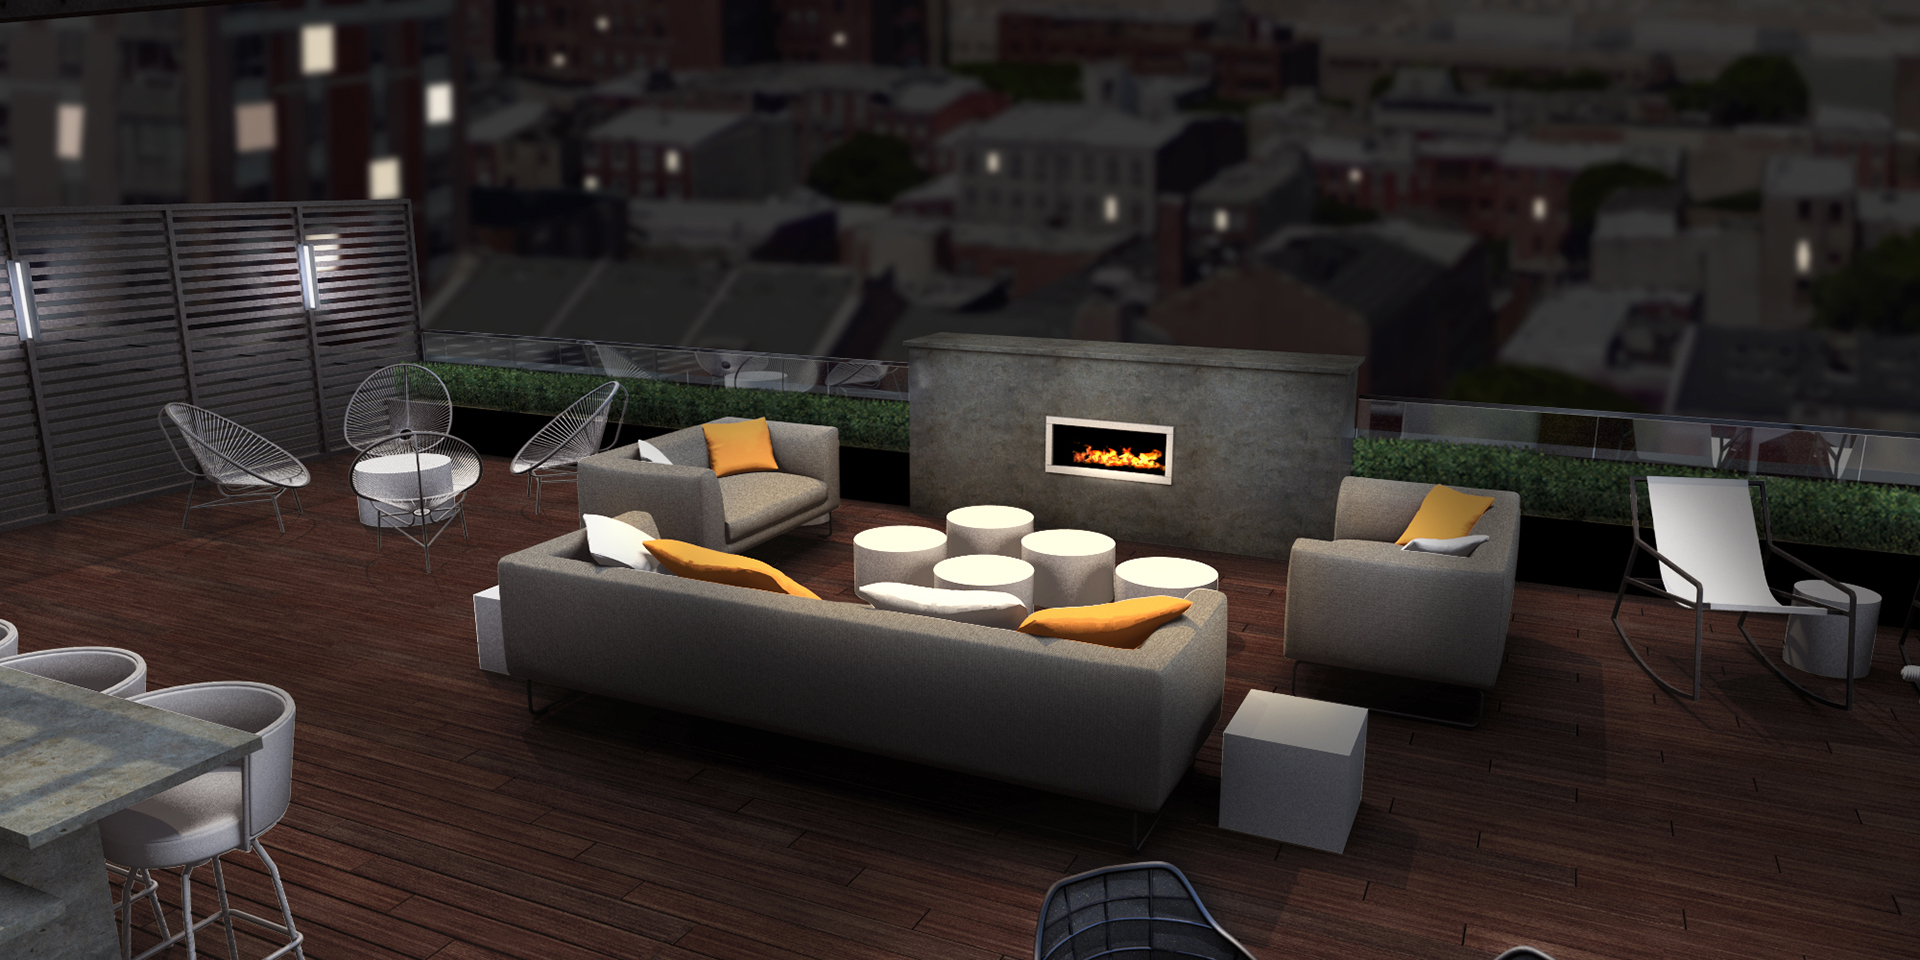 Rooftop Seating Area with Couches and Fireplace at The National